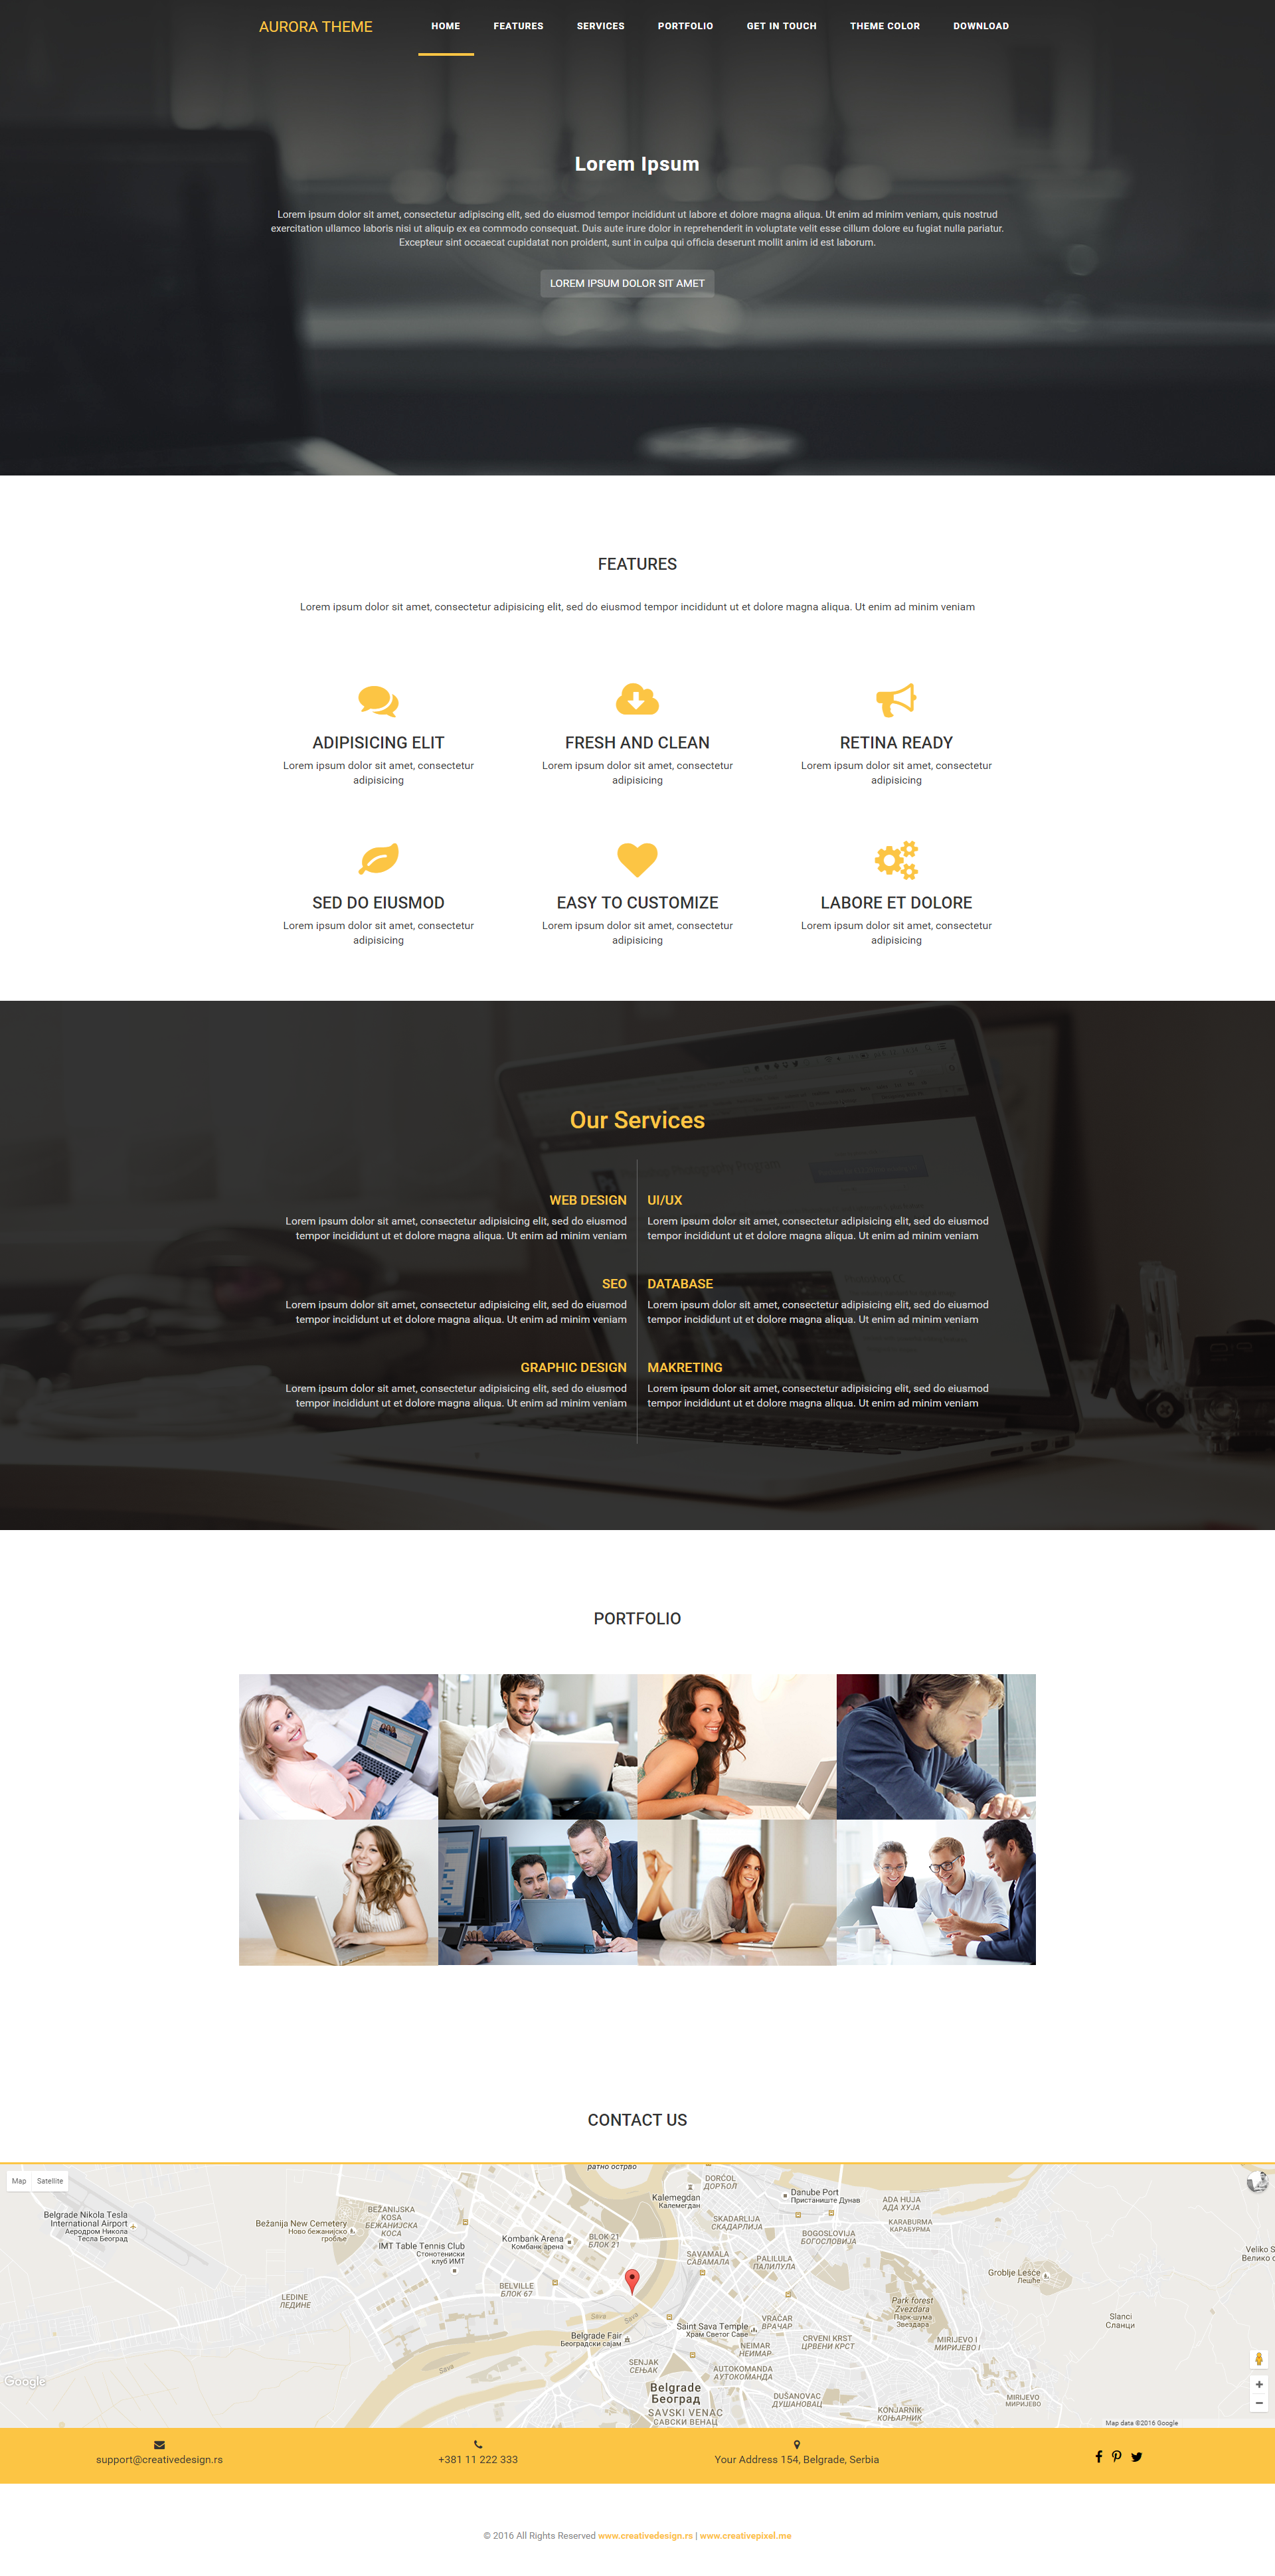 Free Bootstrap Theme. AURORA is an extremely simple & fast loading ...